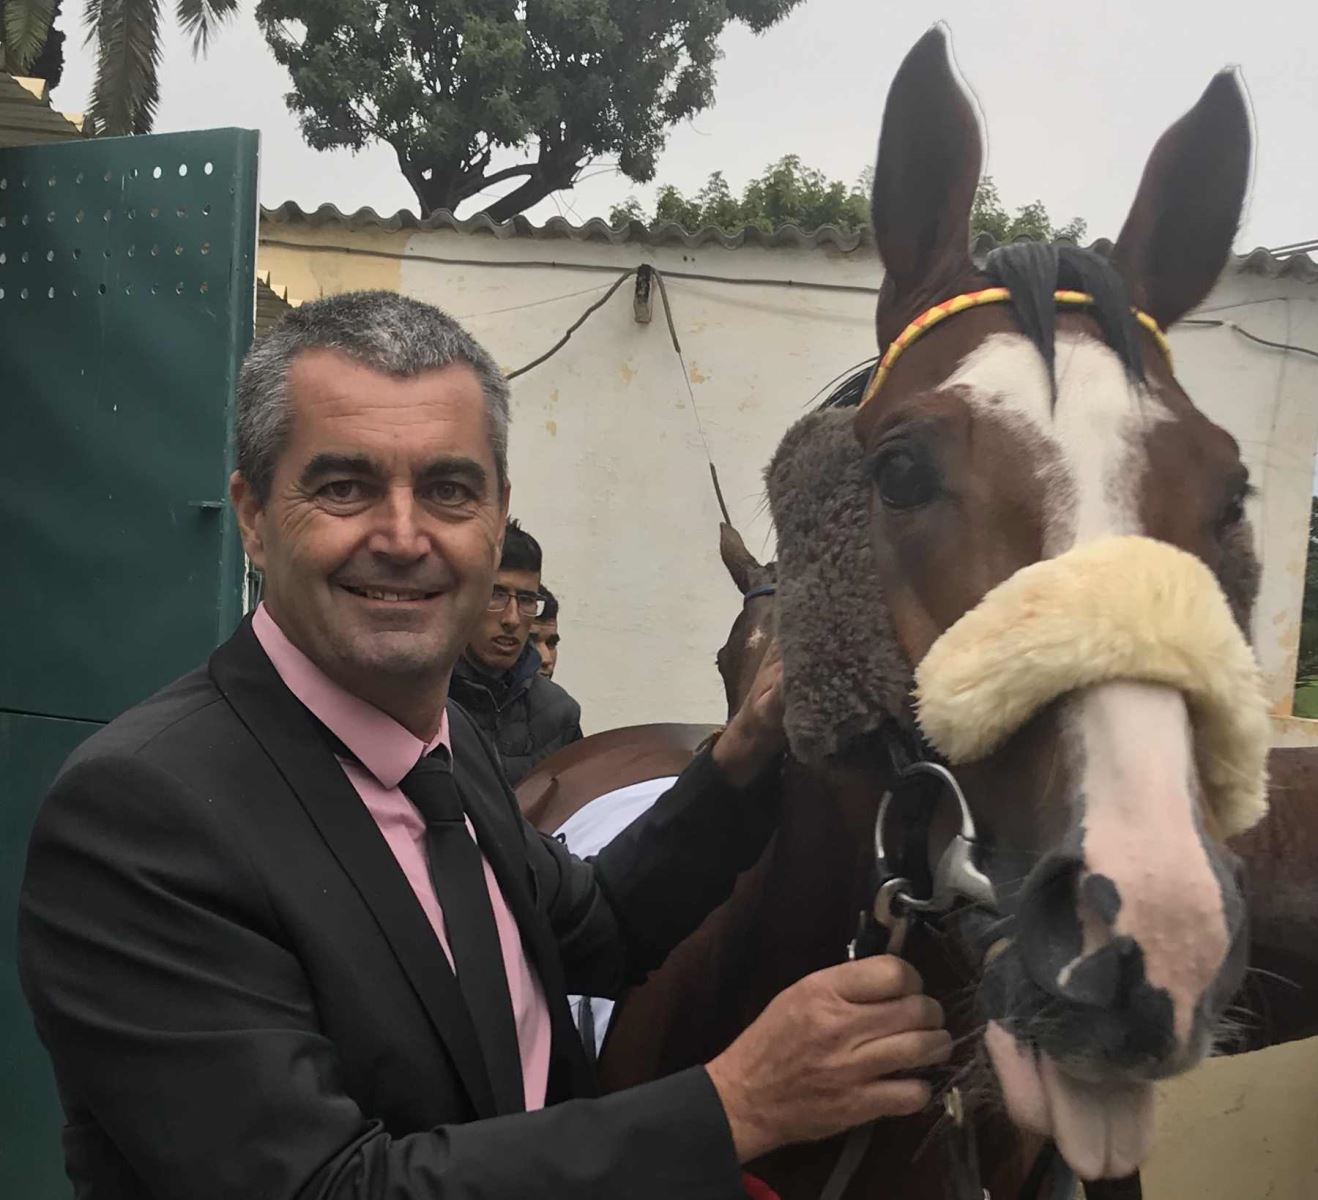 Stéphane Chazel: the one man band of the French Purebred Arabian scene